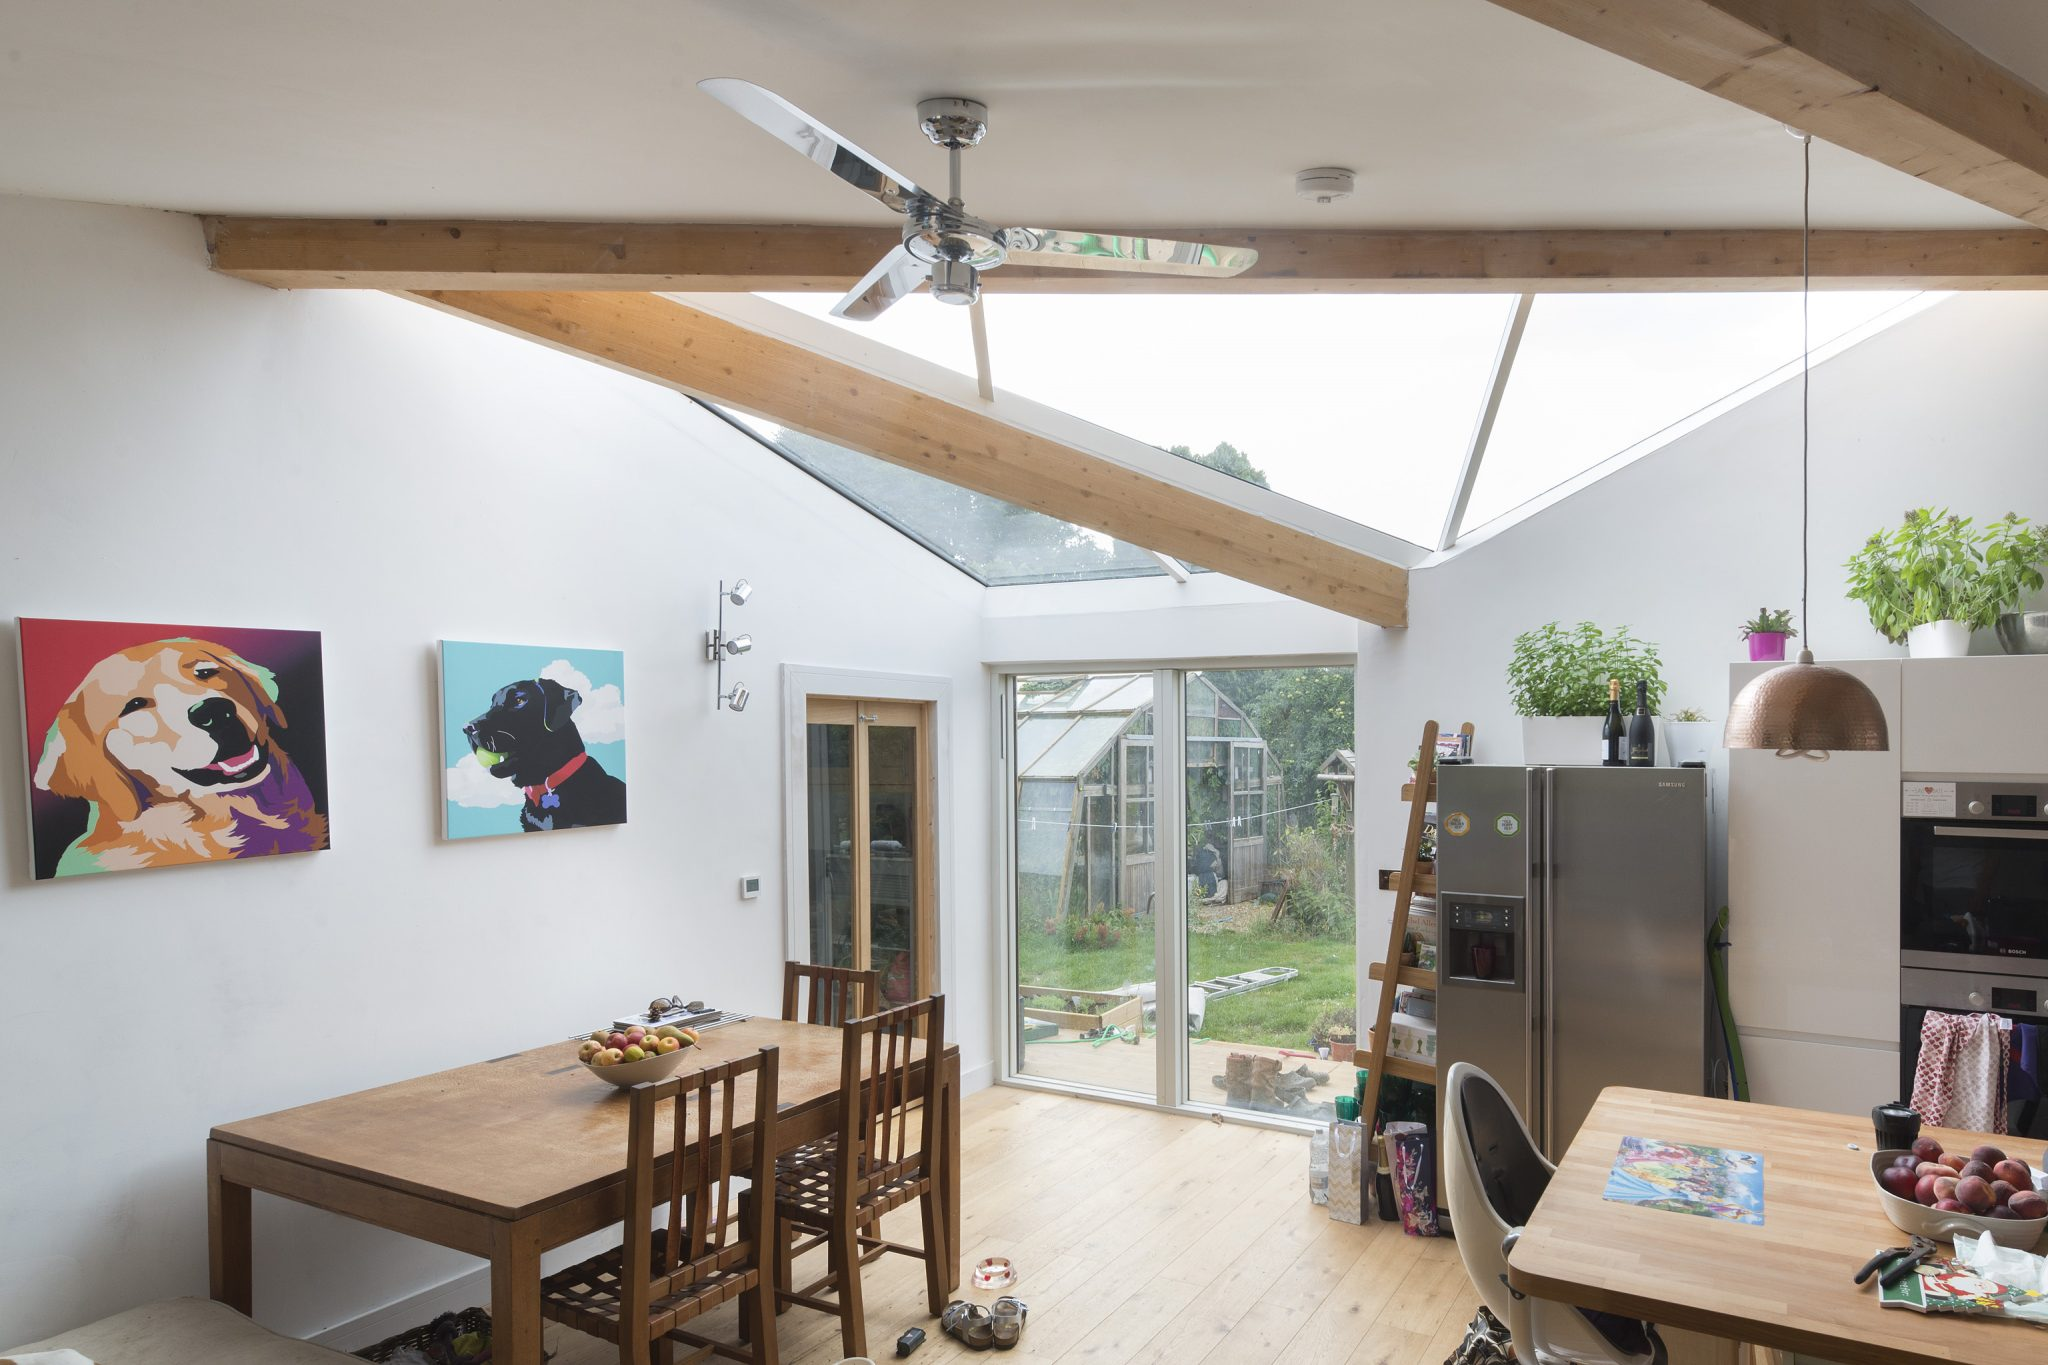 Bespoke Fixed Multi-Panel Skylight